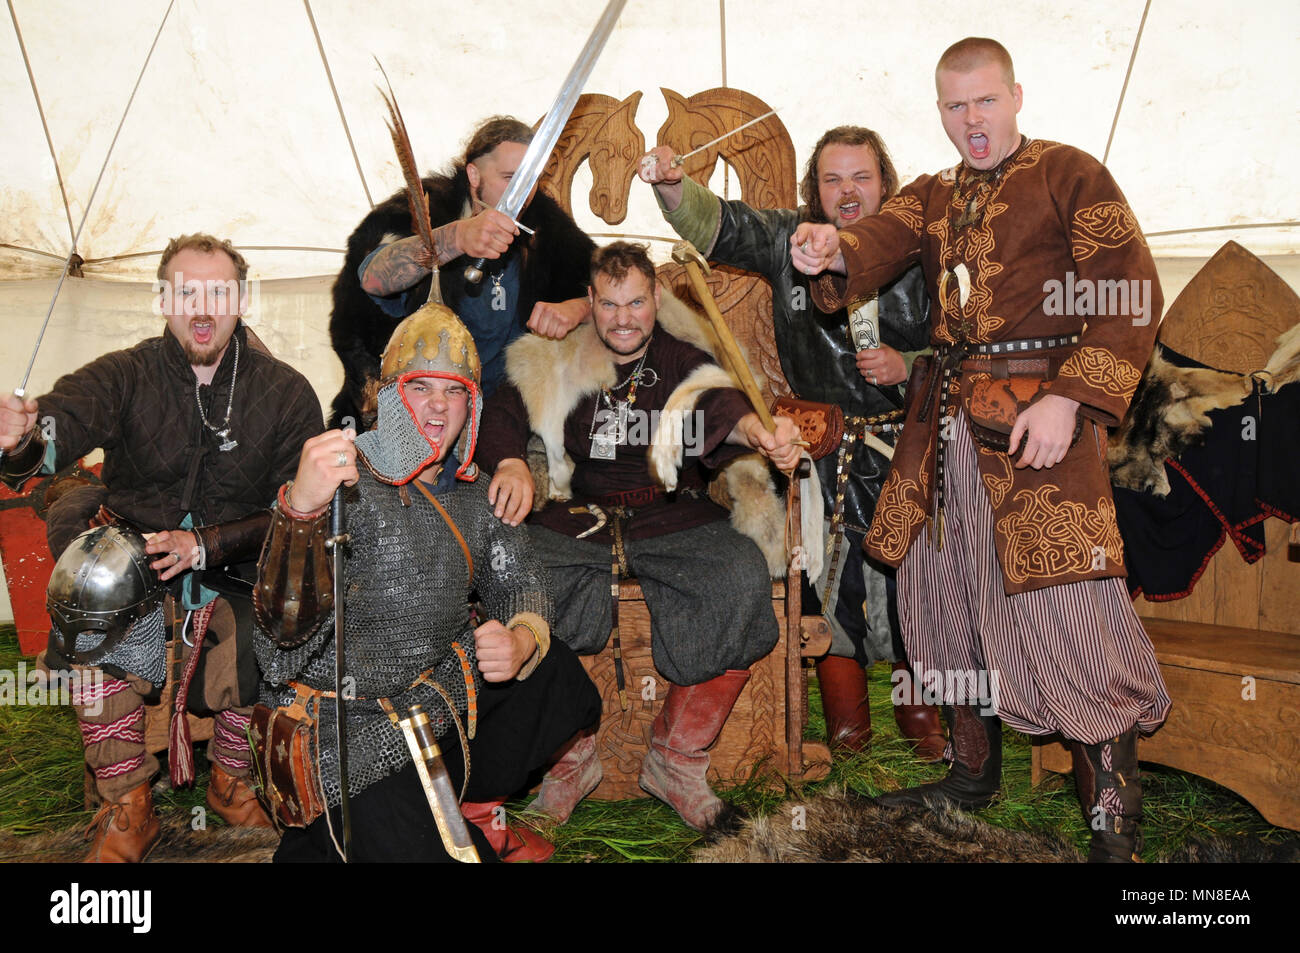 Group of men dressed up as viking in tent roaring and gesturing to the camera as reenactment - Stock Image